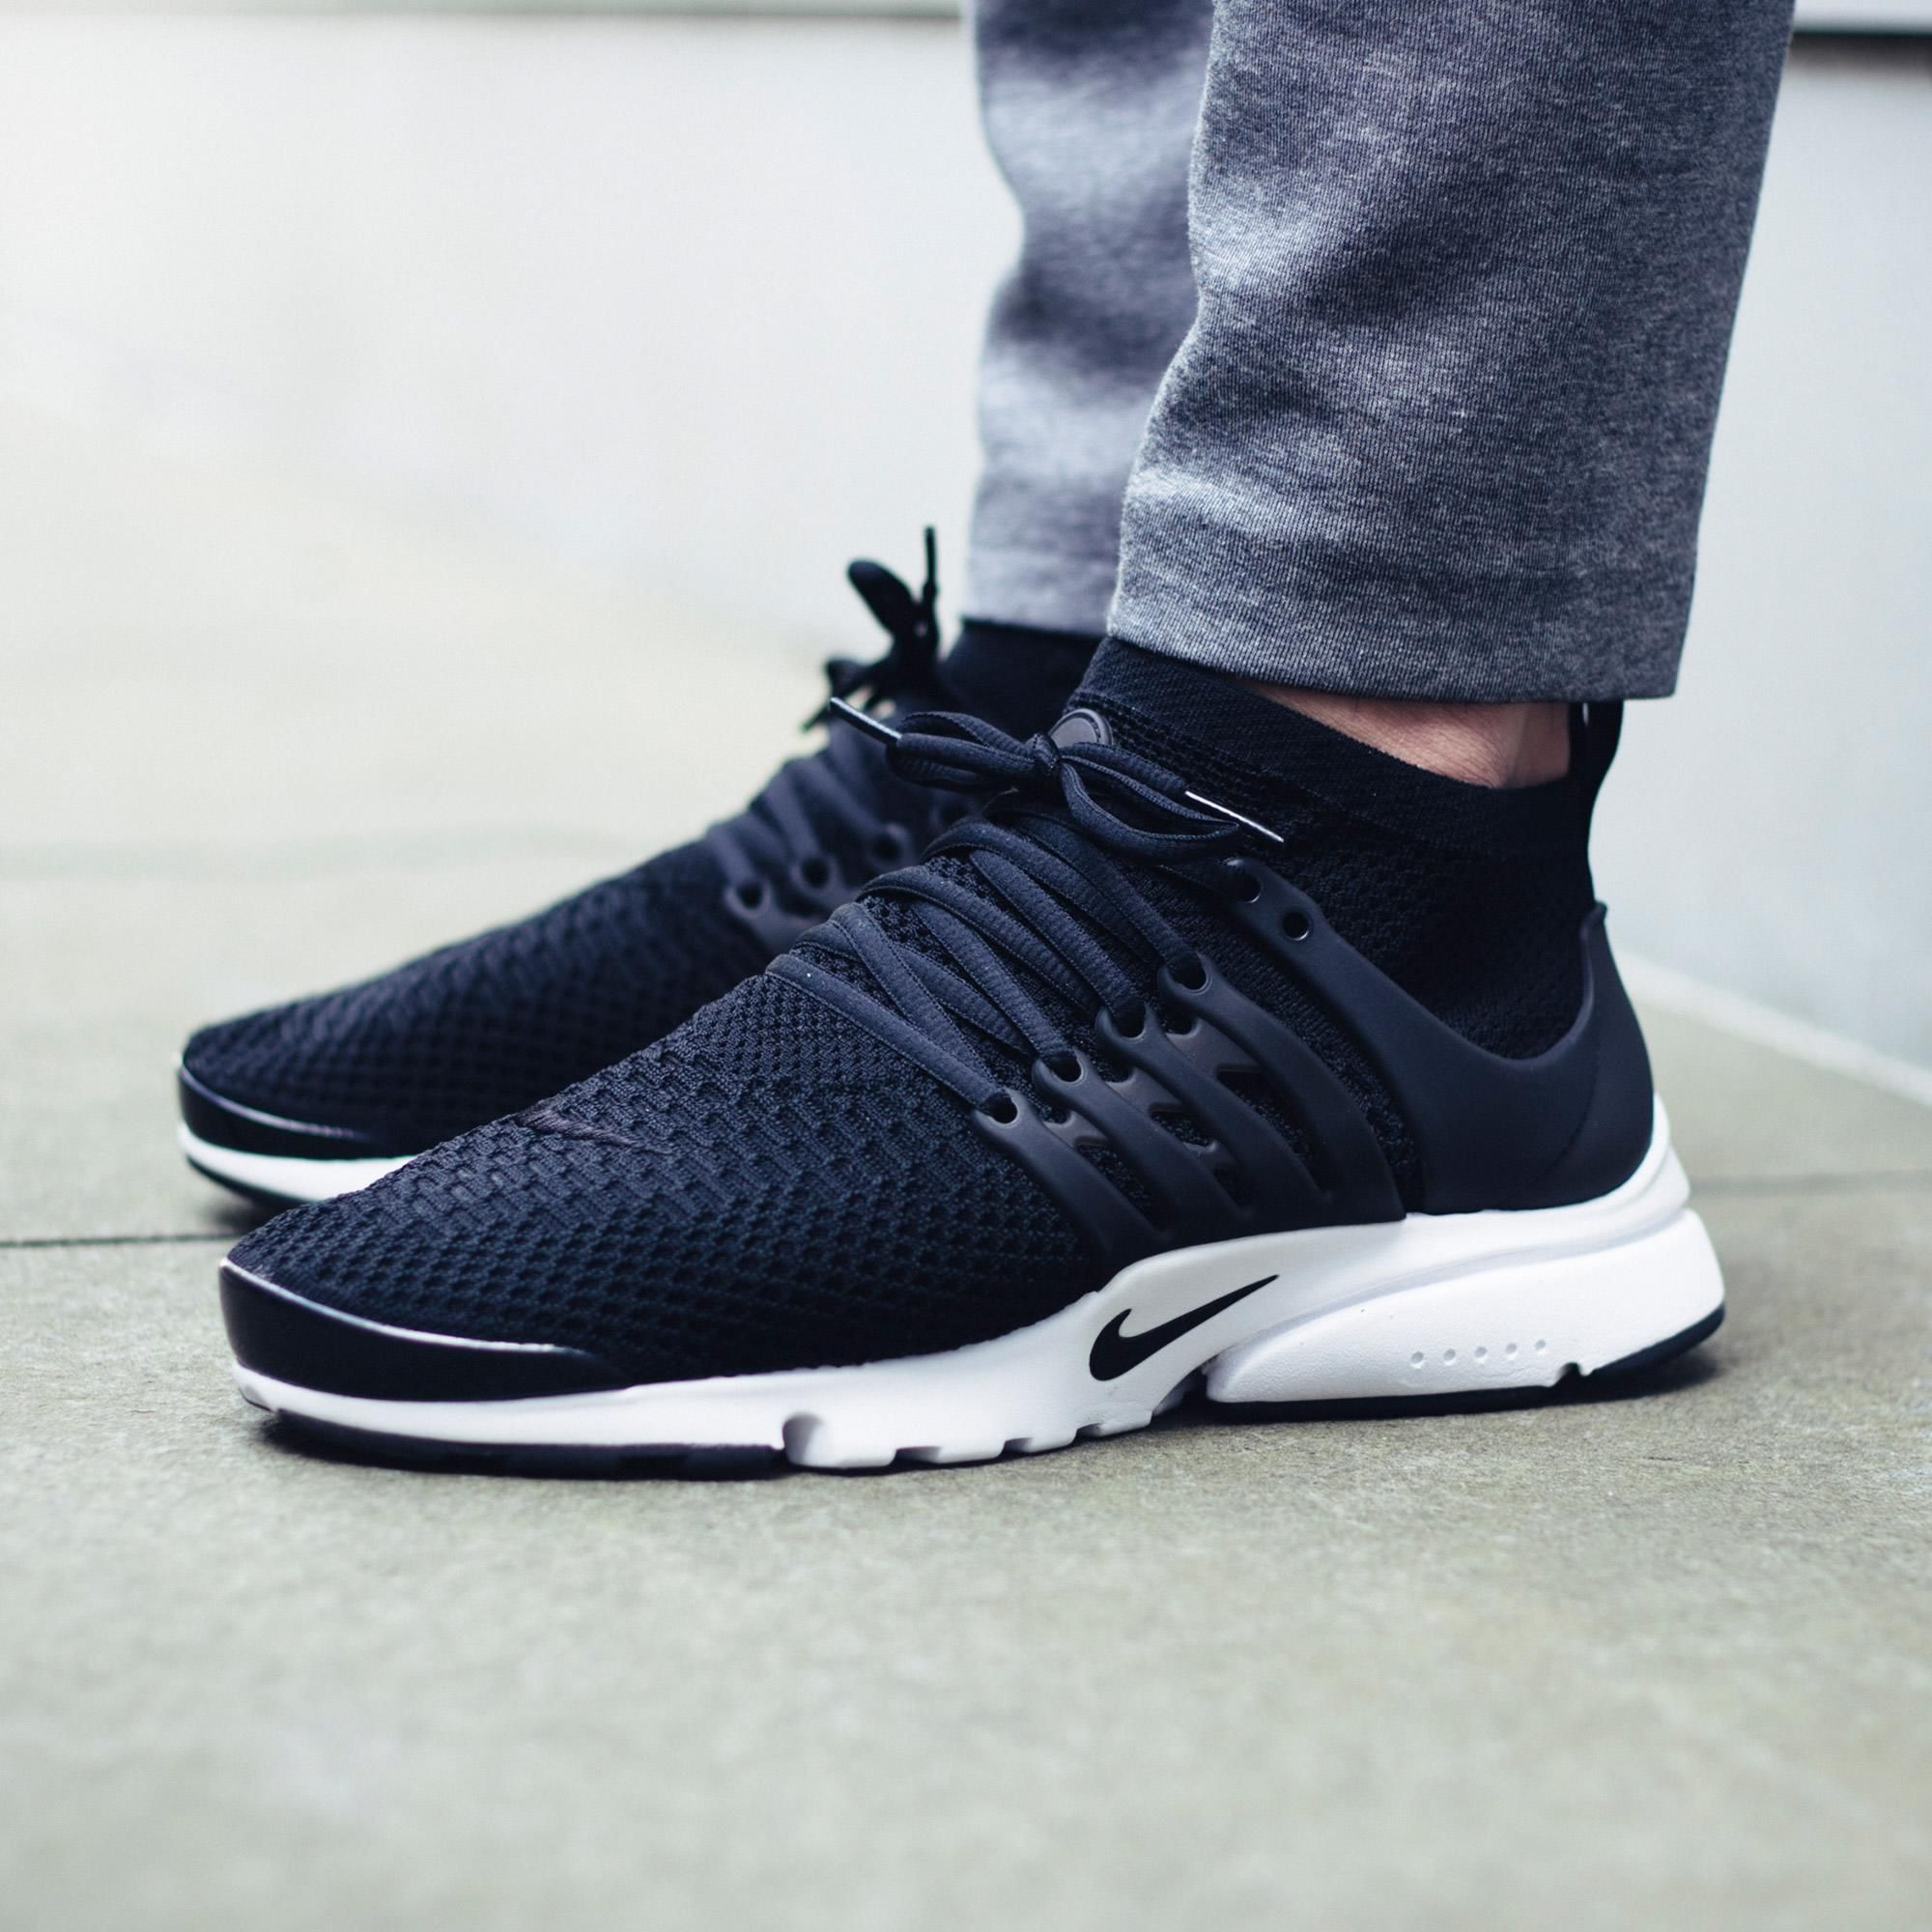 factory authentic c3392 0f004 Shoes1 in 2019 | Nike Air Max | Presto flyknit, Running ...